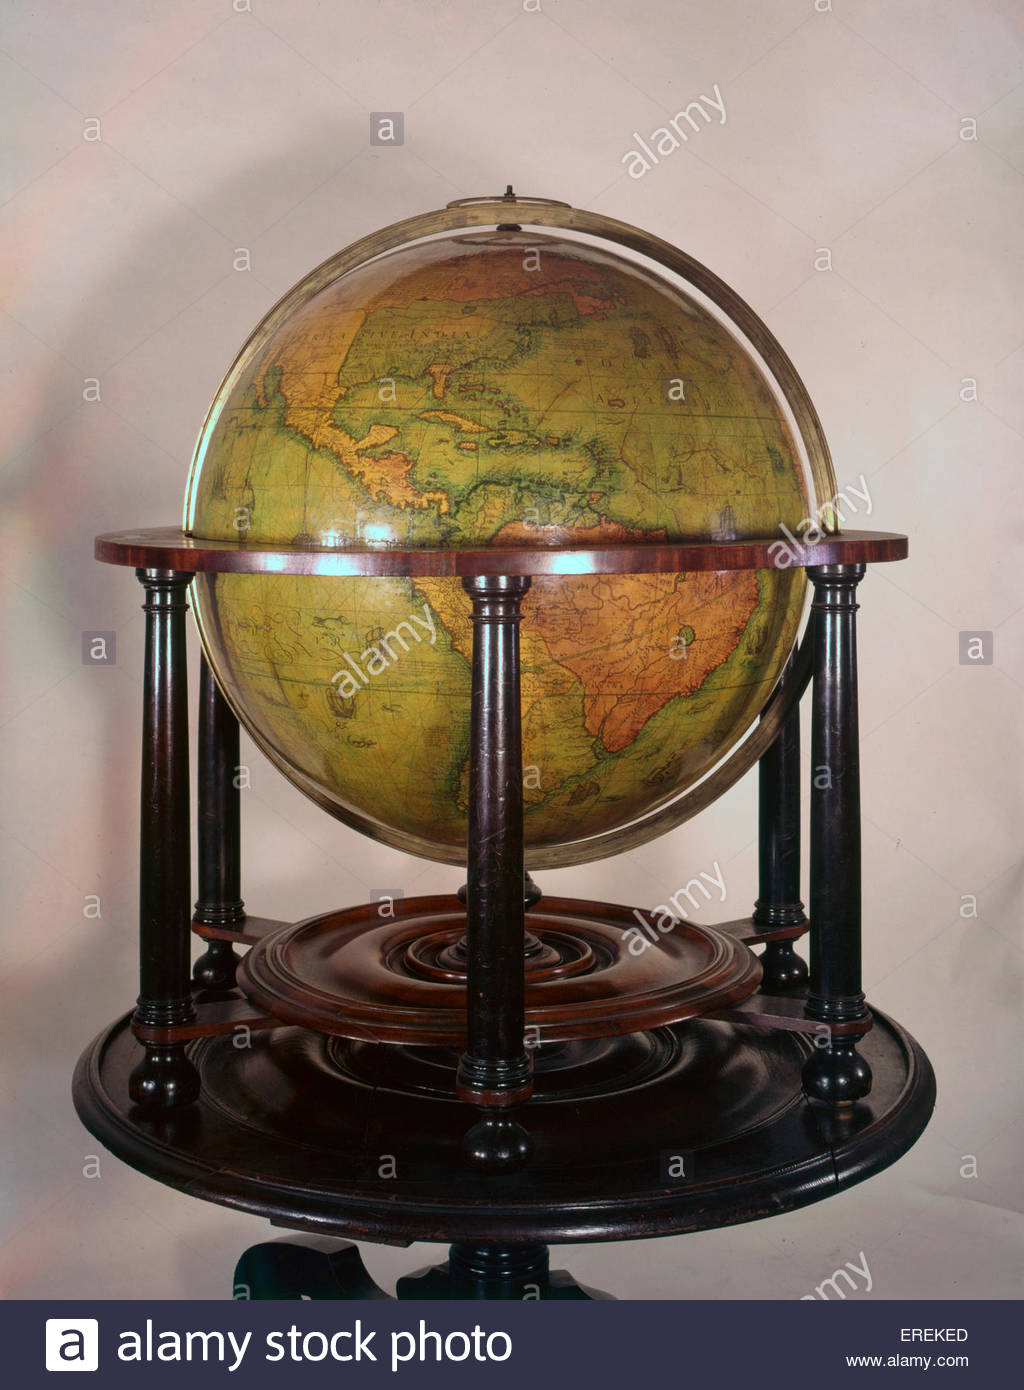 Globe, made in the 16th or 17th century. With depiction of modern day North and South America. (Middle Temple Library, - Stock Image